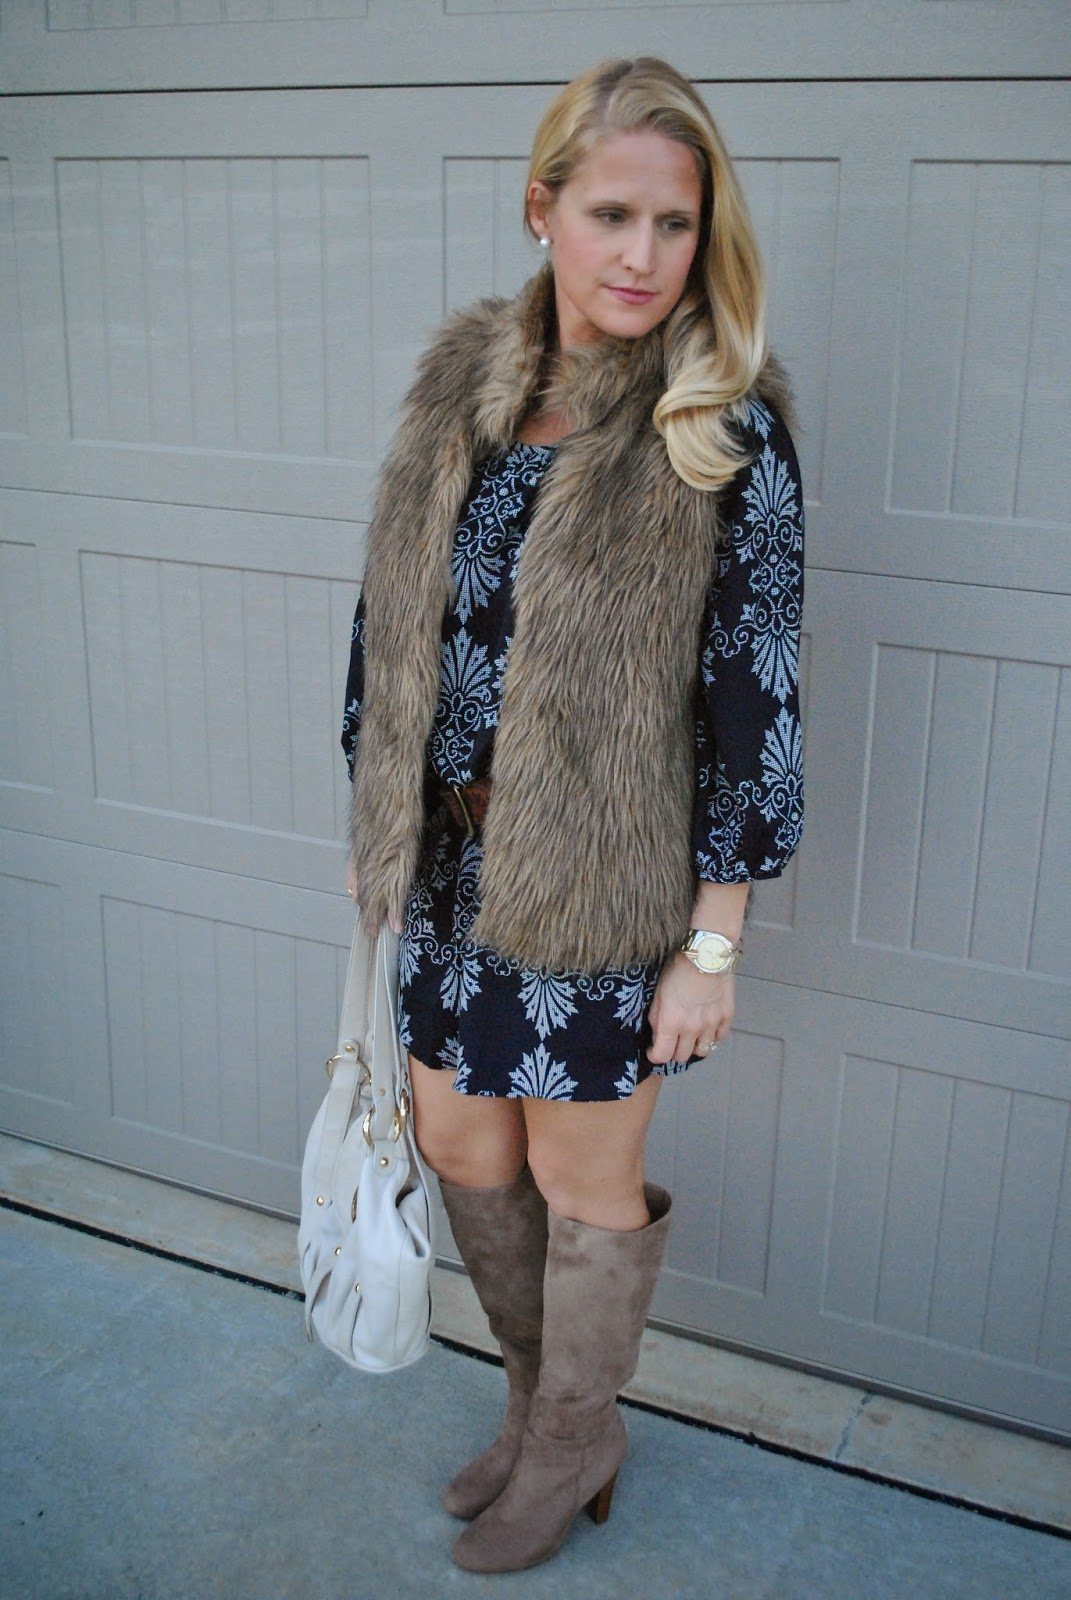 Forever 21 Shift Dress Stacked Heel Beige Boots Fur Vest~The Army Life of an Aviators Wife